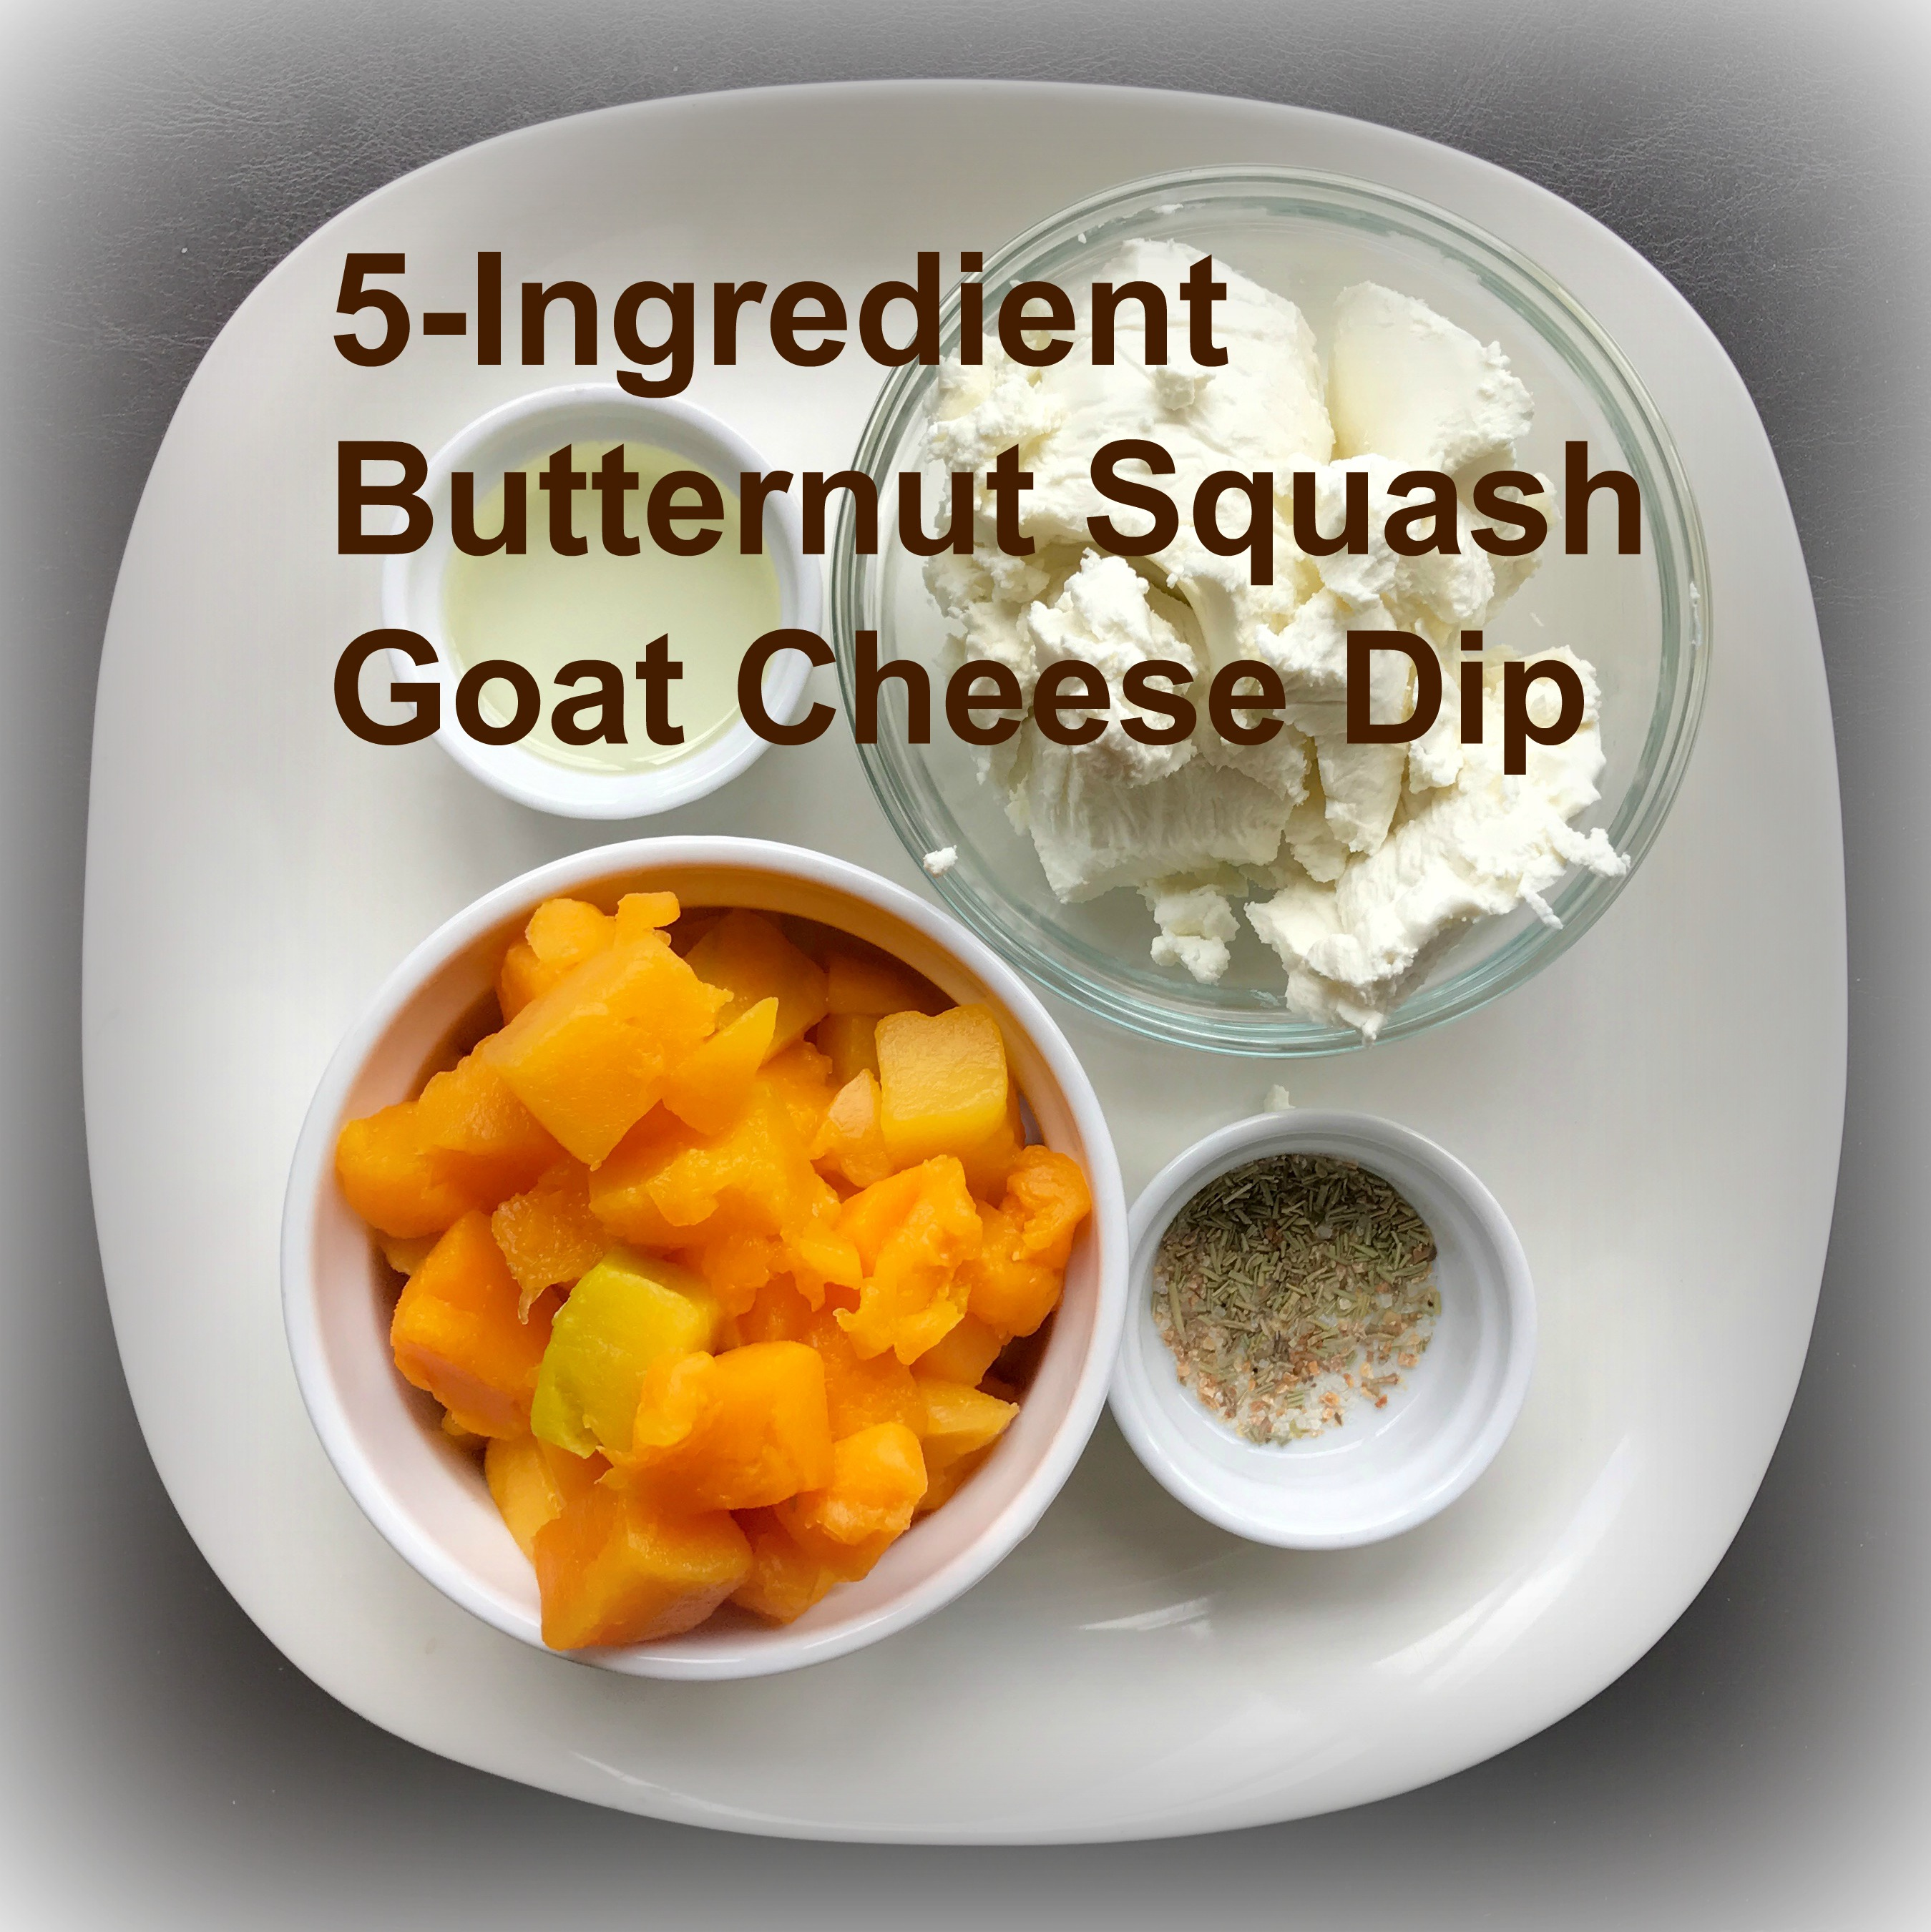 5-Ingredient Butternut Squash Goat Cheese Dip